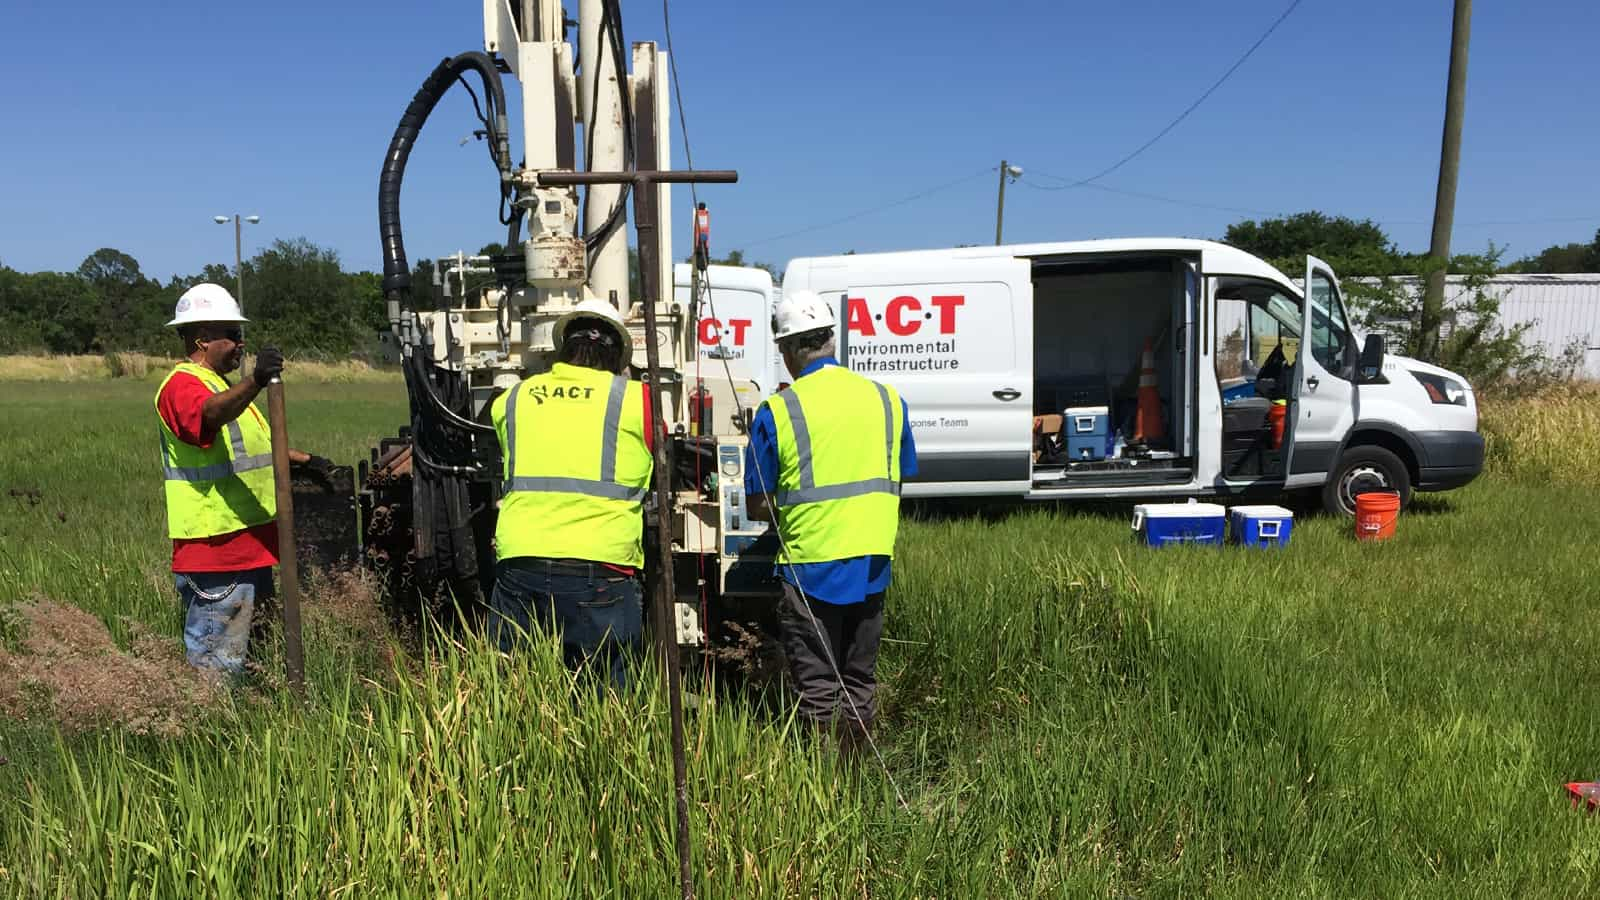 ACT working on remediation on site